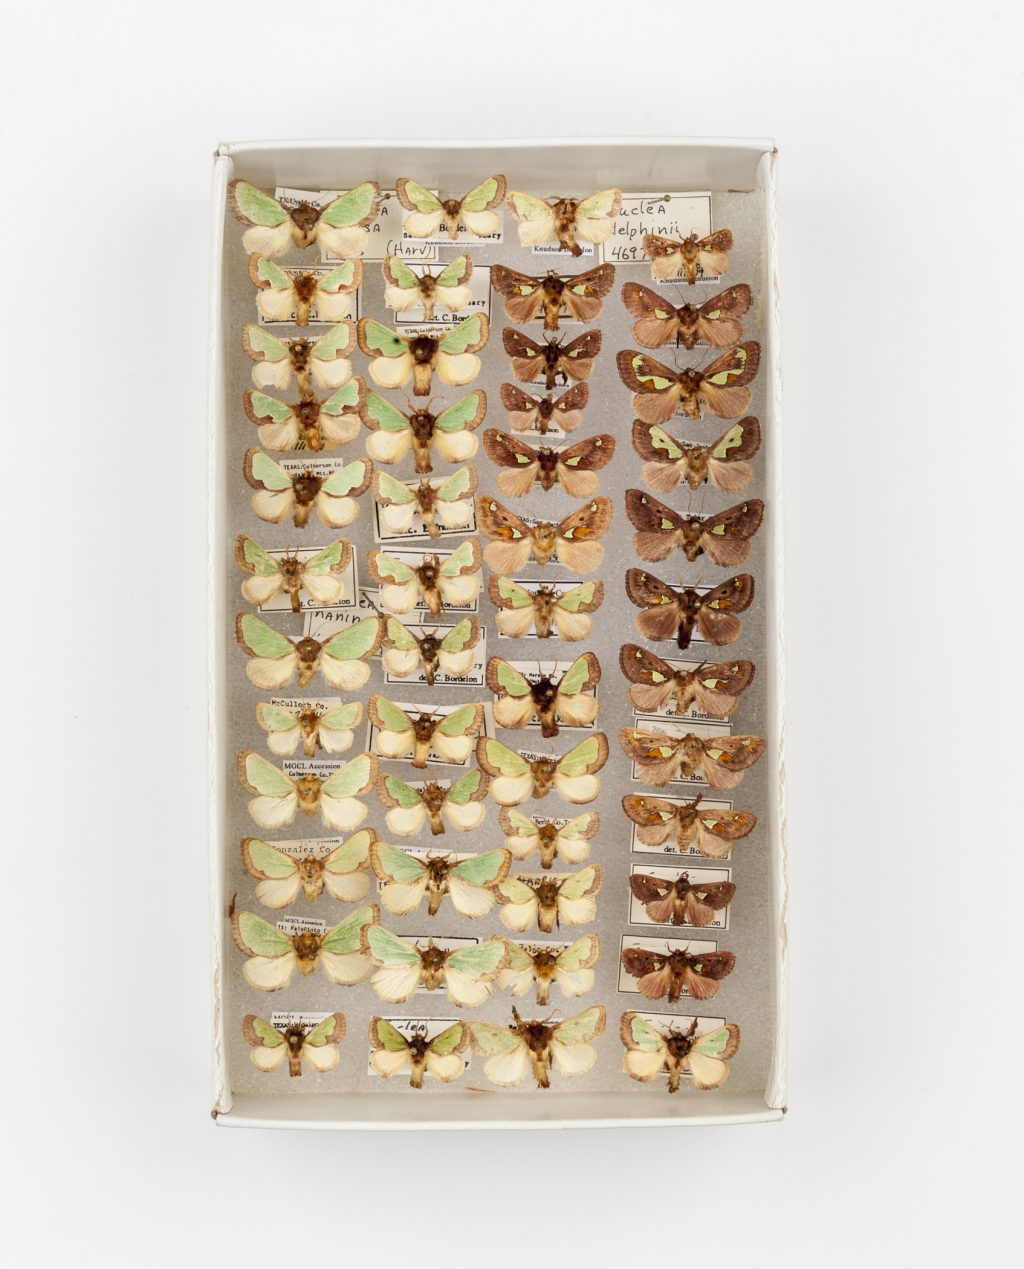 Rows of moth specimens displayed in a box